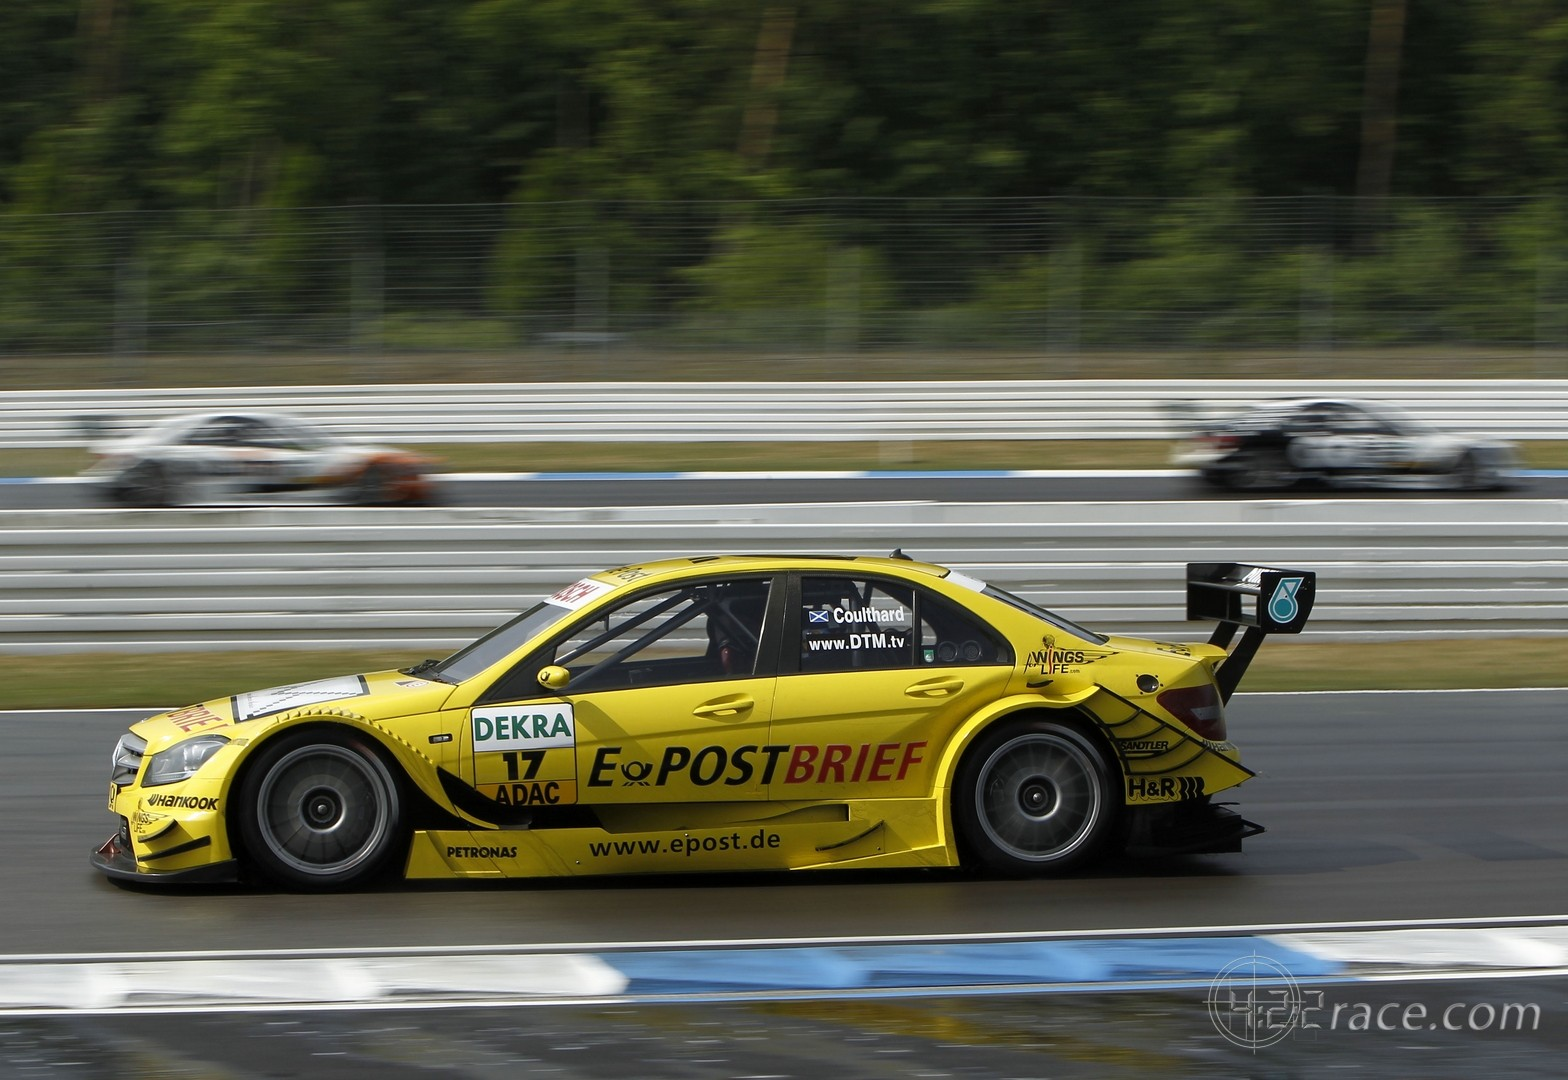 2011 DTM - Mercedes - David Coulthard